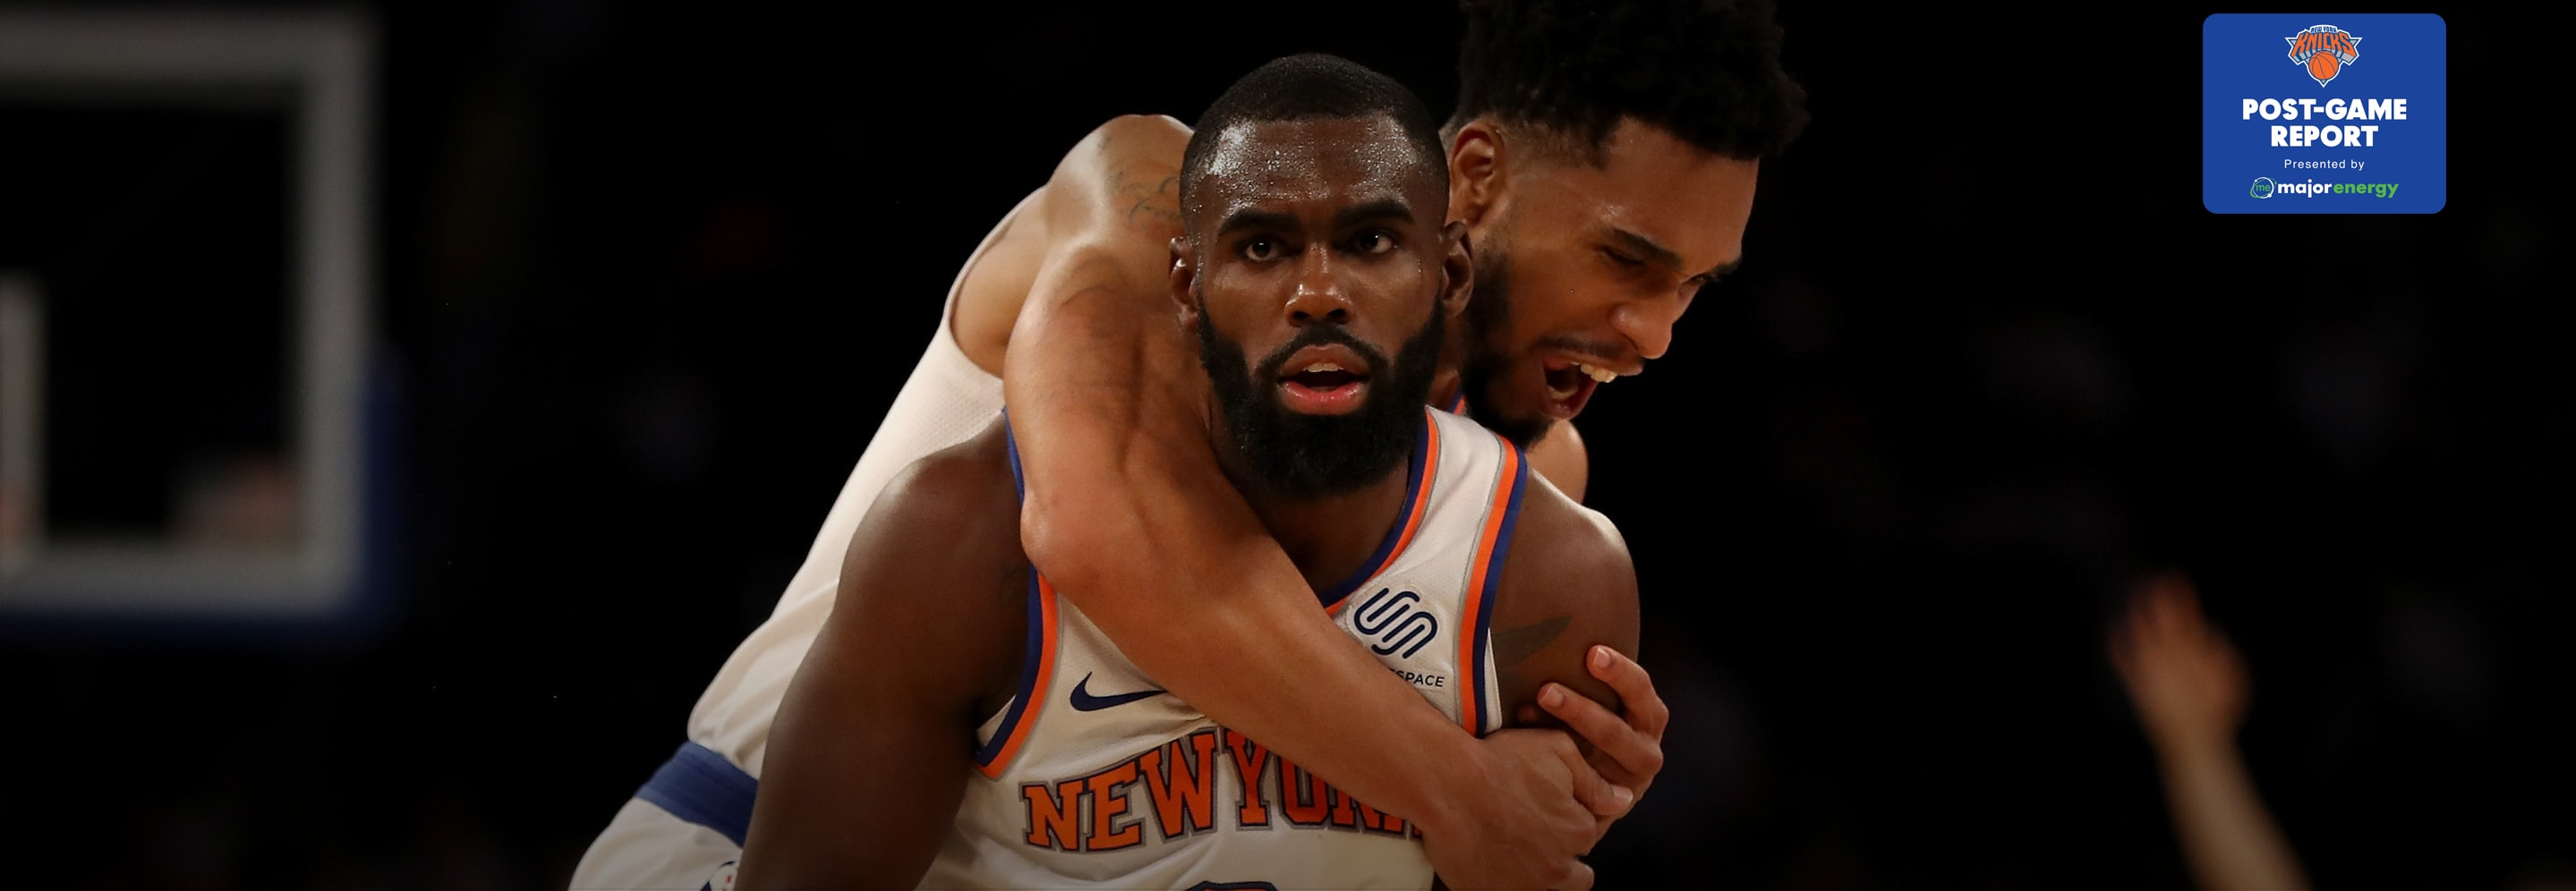 NYK 106 UTAH 101: Hardaway Jr. Delivers in the Clutch as Knicks Improve to 7-3 at MSG